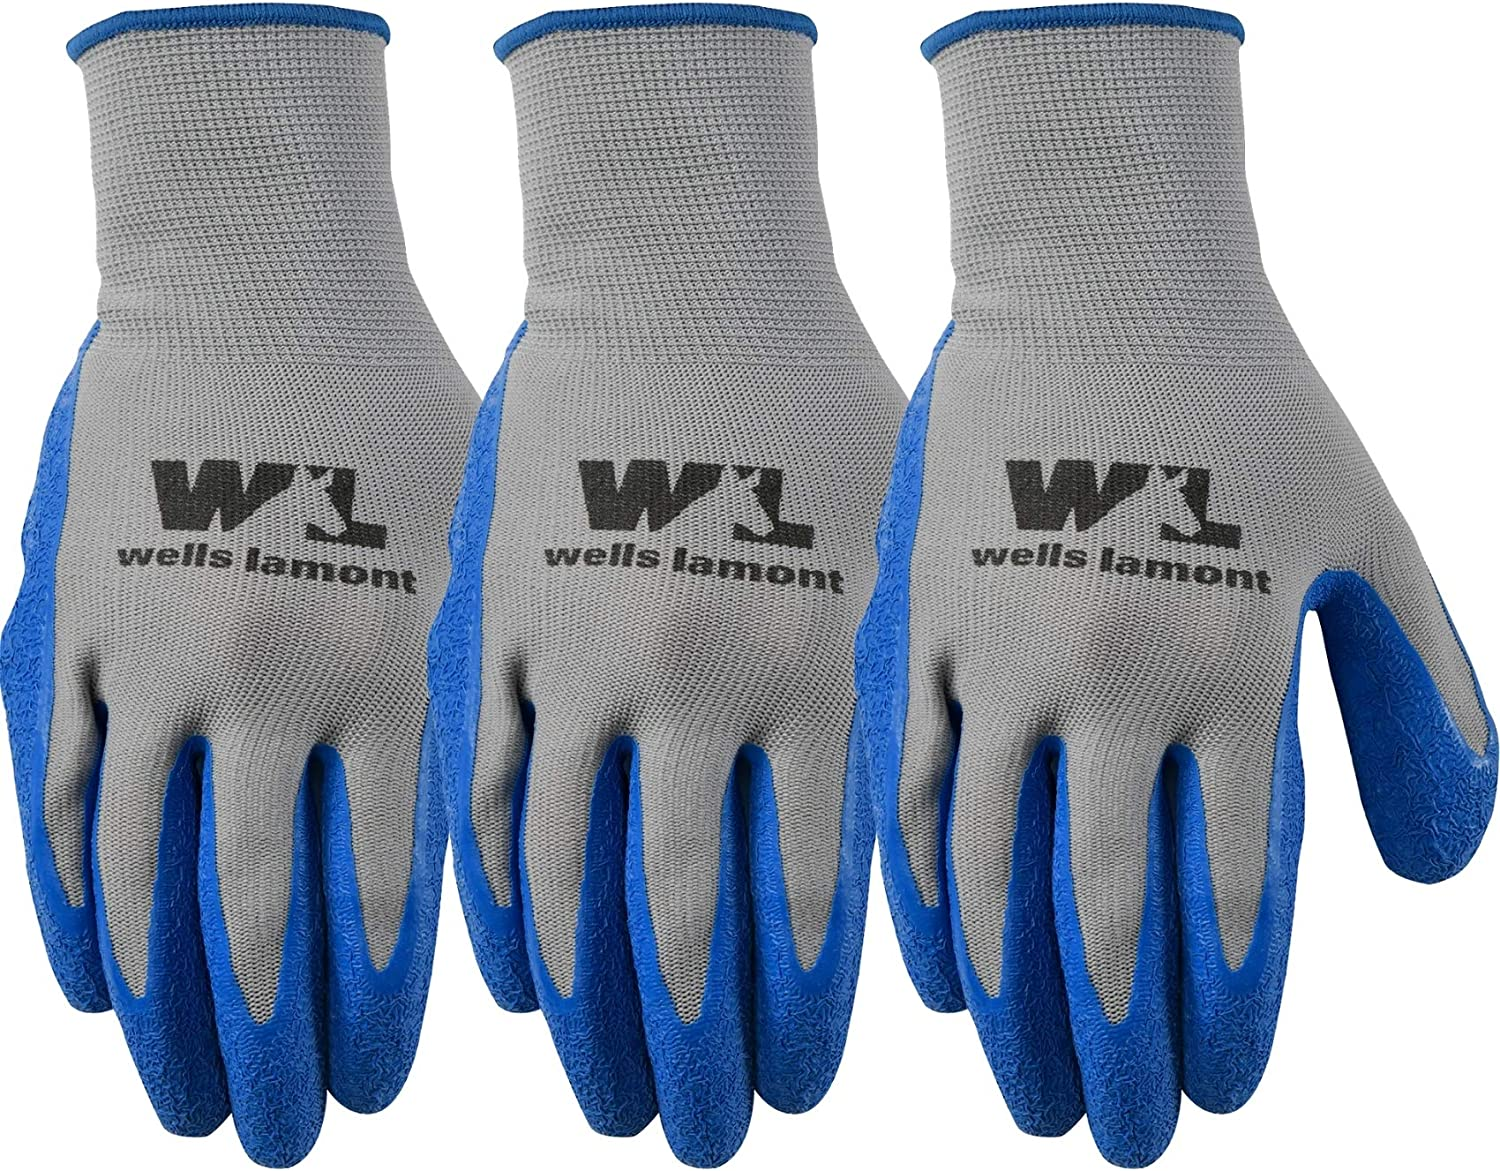 3 Pair Pack Latex Grip Work Gloves, Extra Large (Wells Lamont 133XLF) , Grey